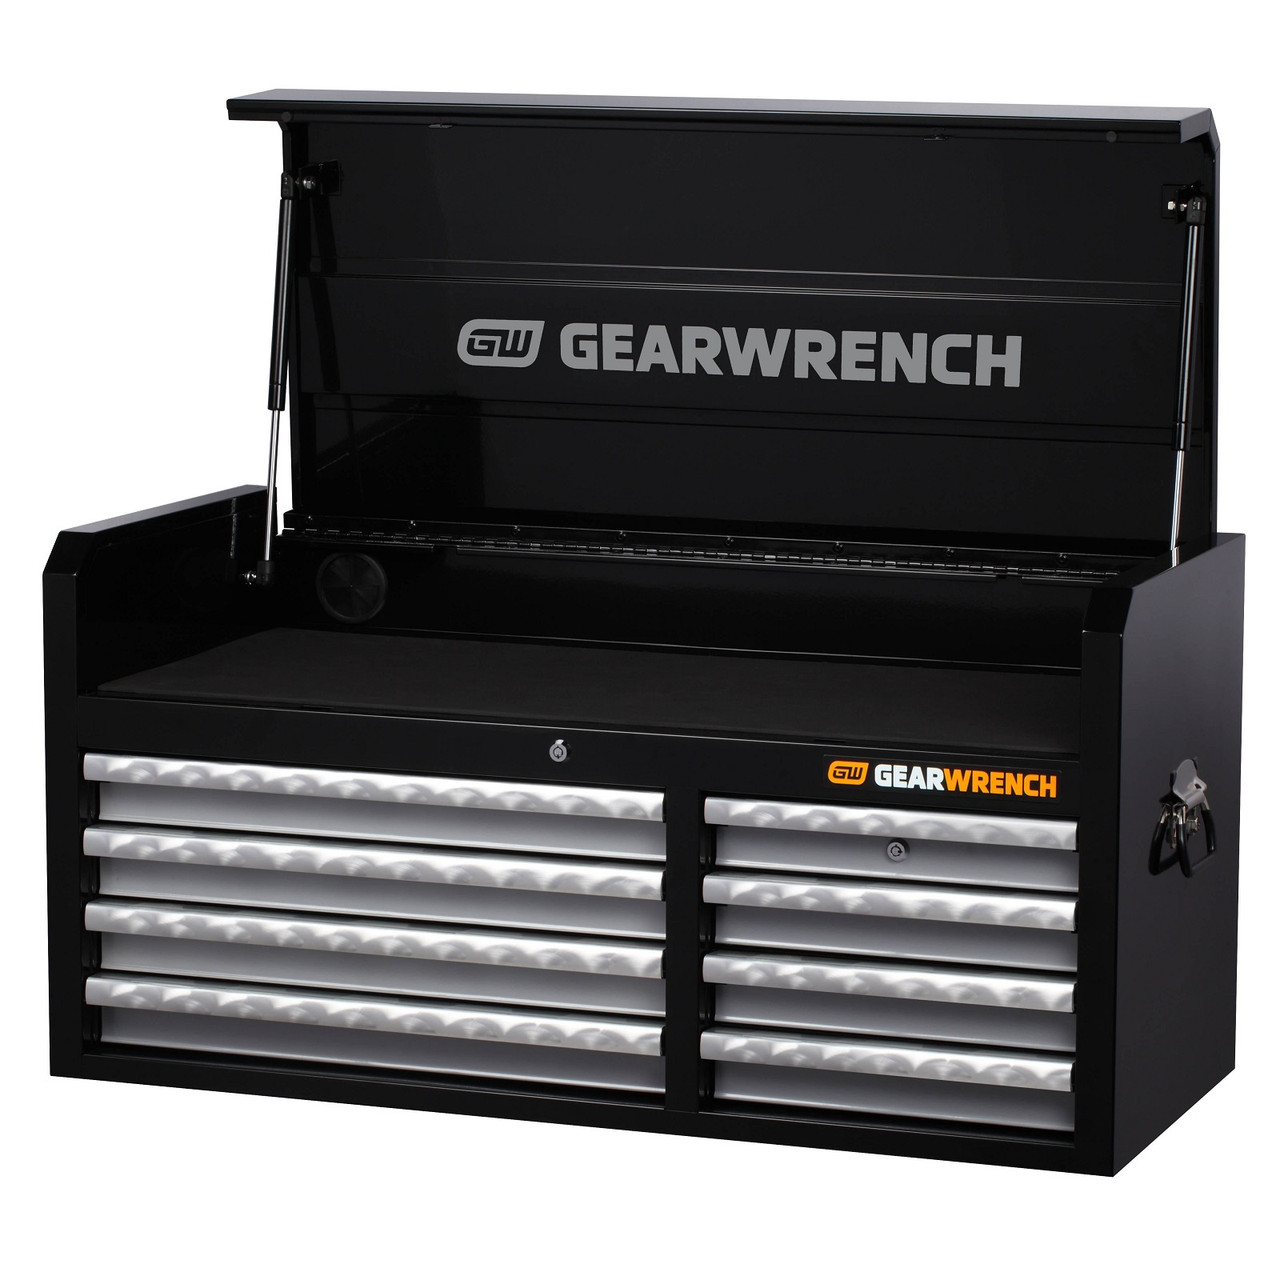 GEARWRENCH 42 inch 8 Drawer Chest XL Series toolbox– Black and Silver 83156N